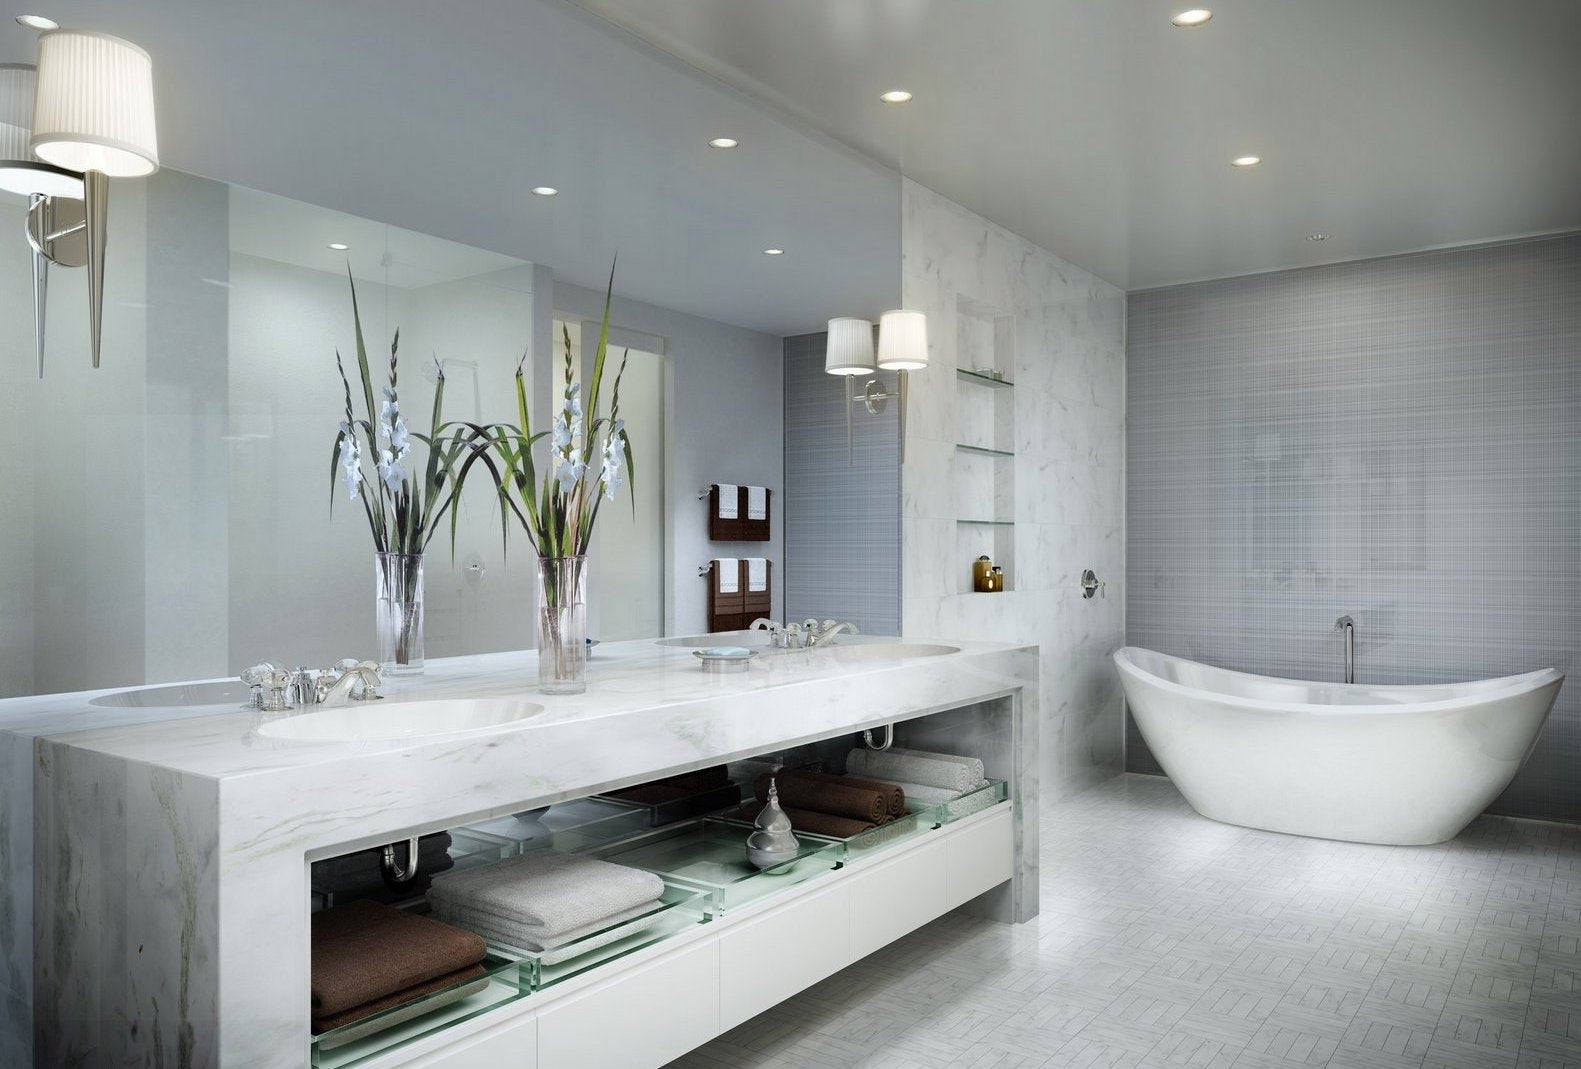 Marble tiled bathroom in white and grey, very luxurious